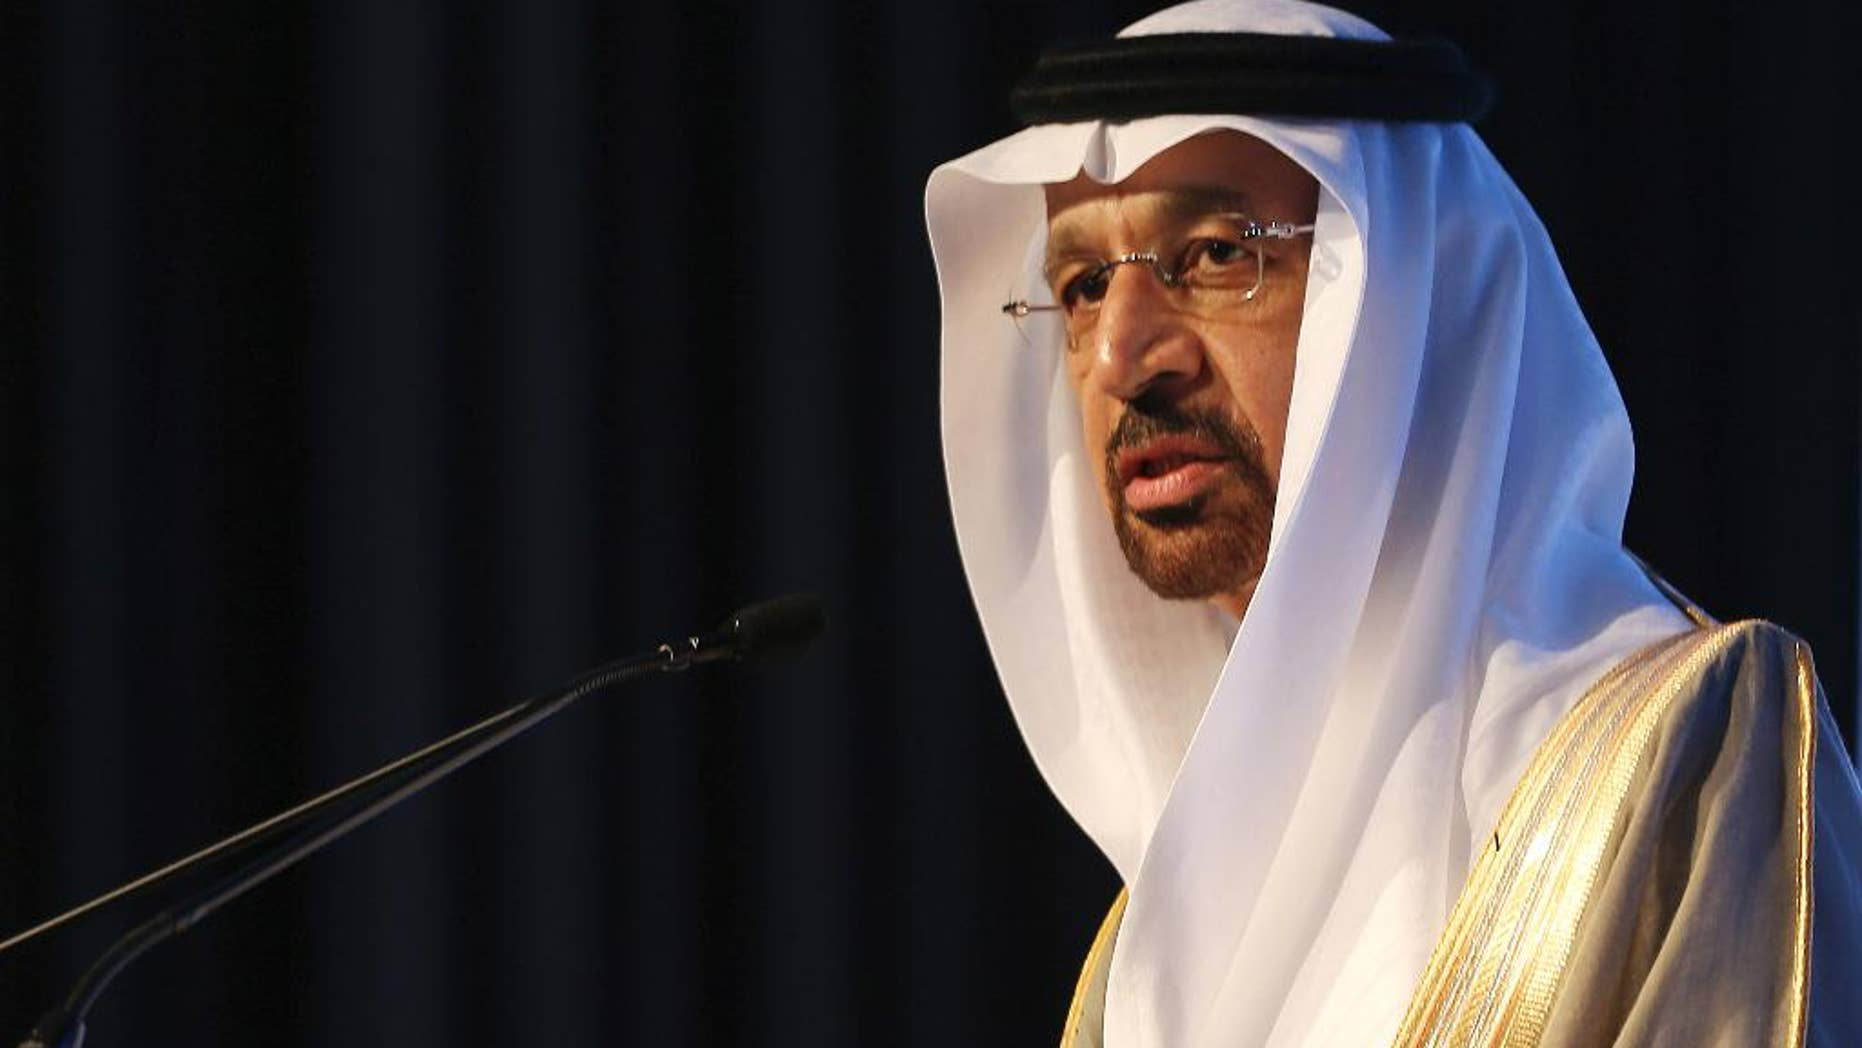 FILE- In this Jan. 12, 2017 file photo, Saudi's Oil Minister Khalid al-Falih, speaks during an Energy Forum in Abu Dhabi, United Arab Emirates. On Thursday, April 20, 2017, Al-Falih suggested that production cuts agreed to by OPEC members and countries outside of the cartel may need to continue to help shore up crude oil prices. (AP Photo/Kamran Jebreili, File)